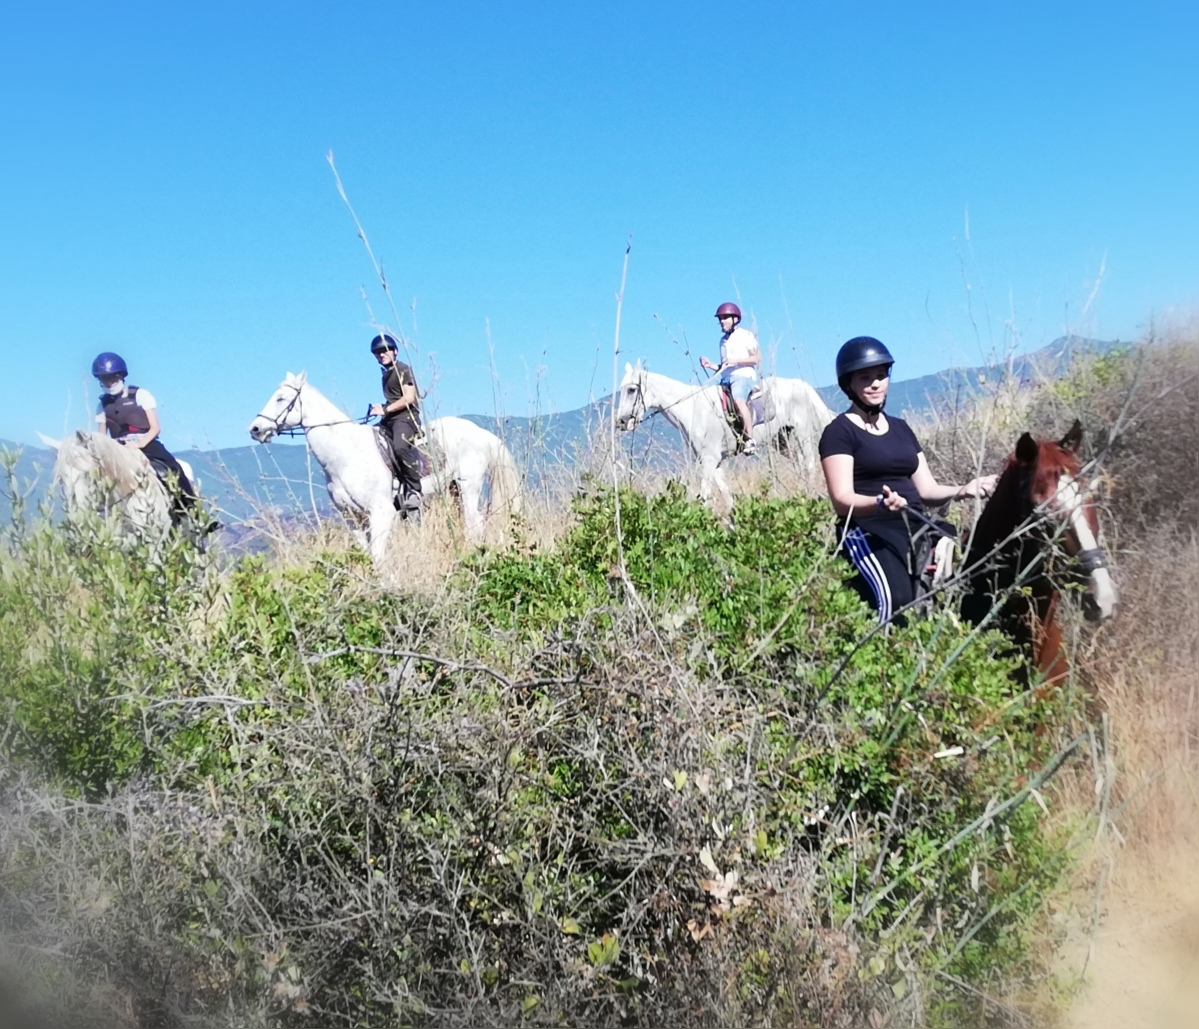 Saddle up experience - beginners horse riding at Ranch Siesta Los Rubios Estepona